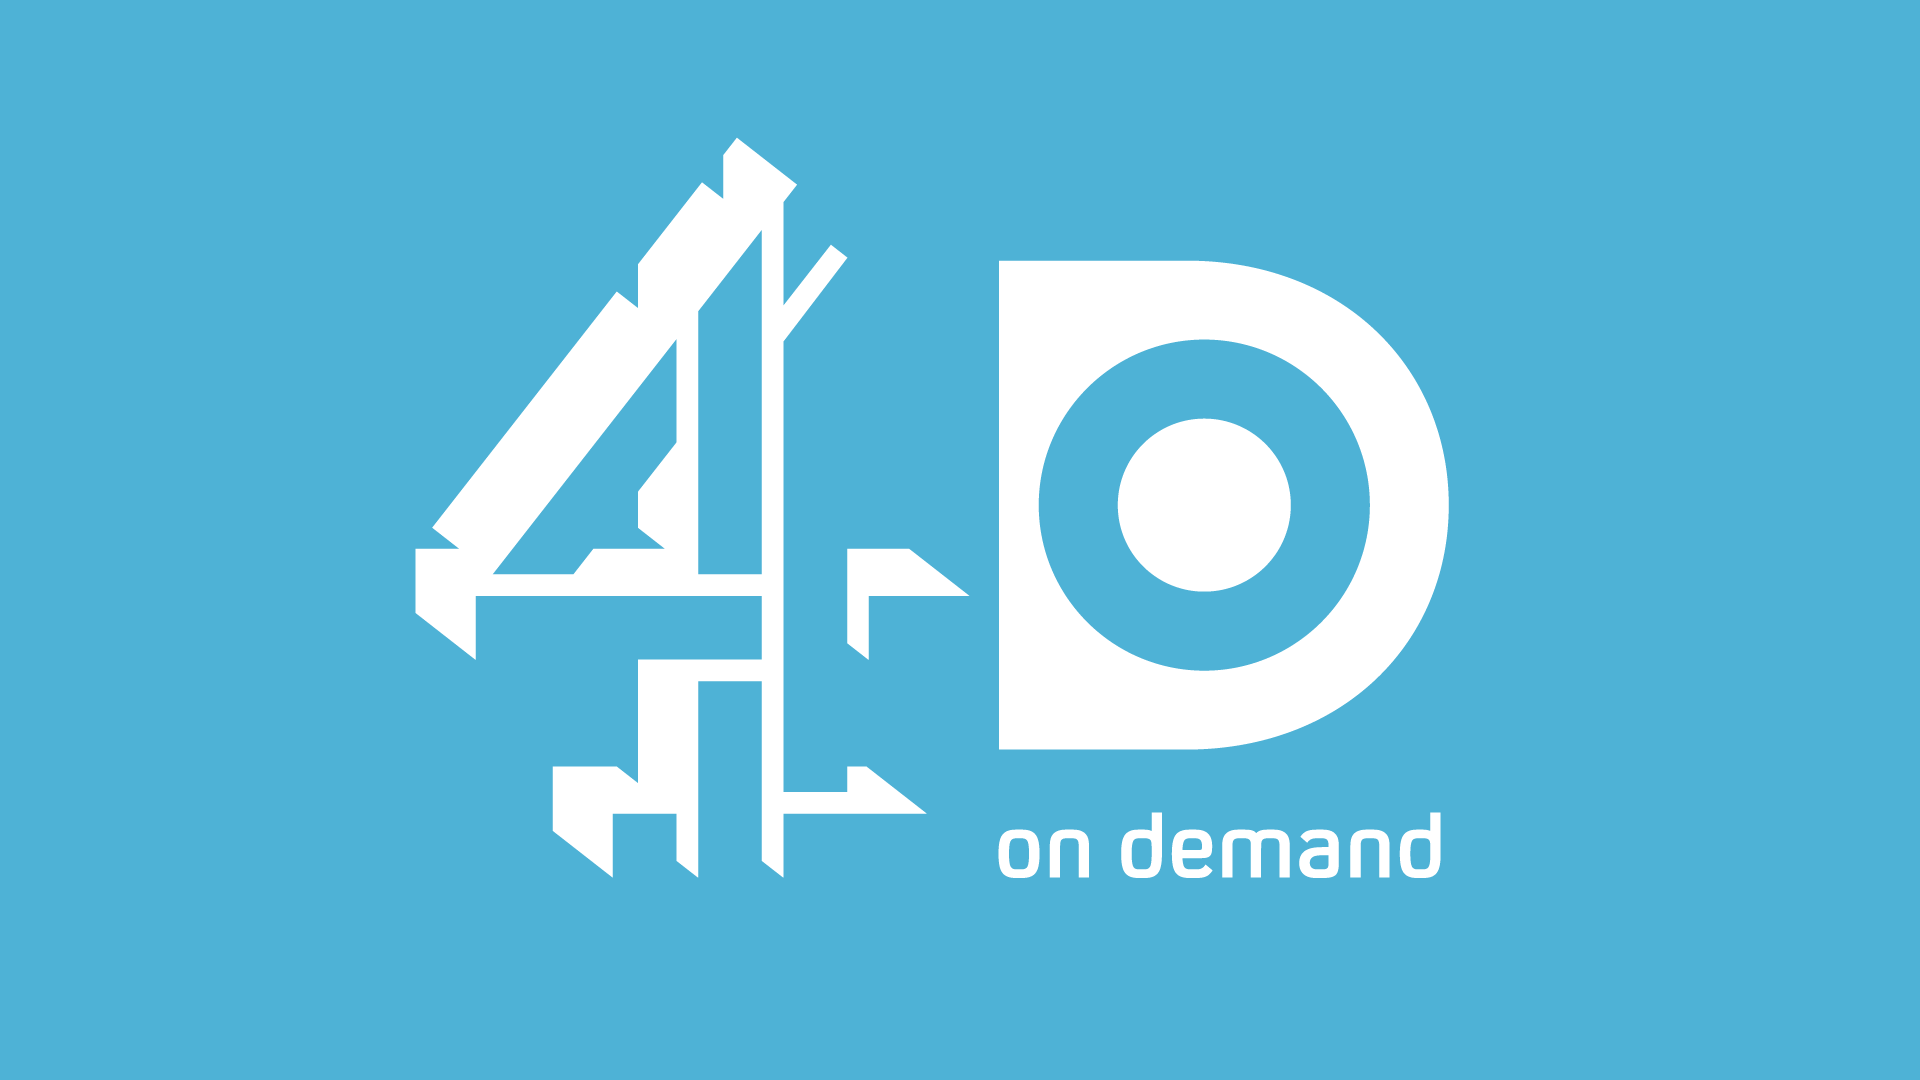 Our logo for 4oD